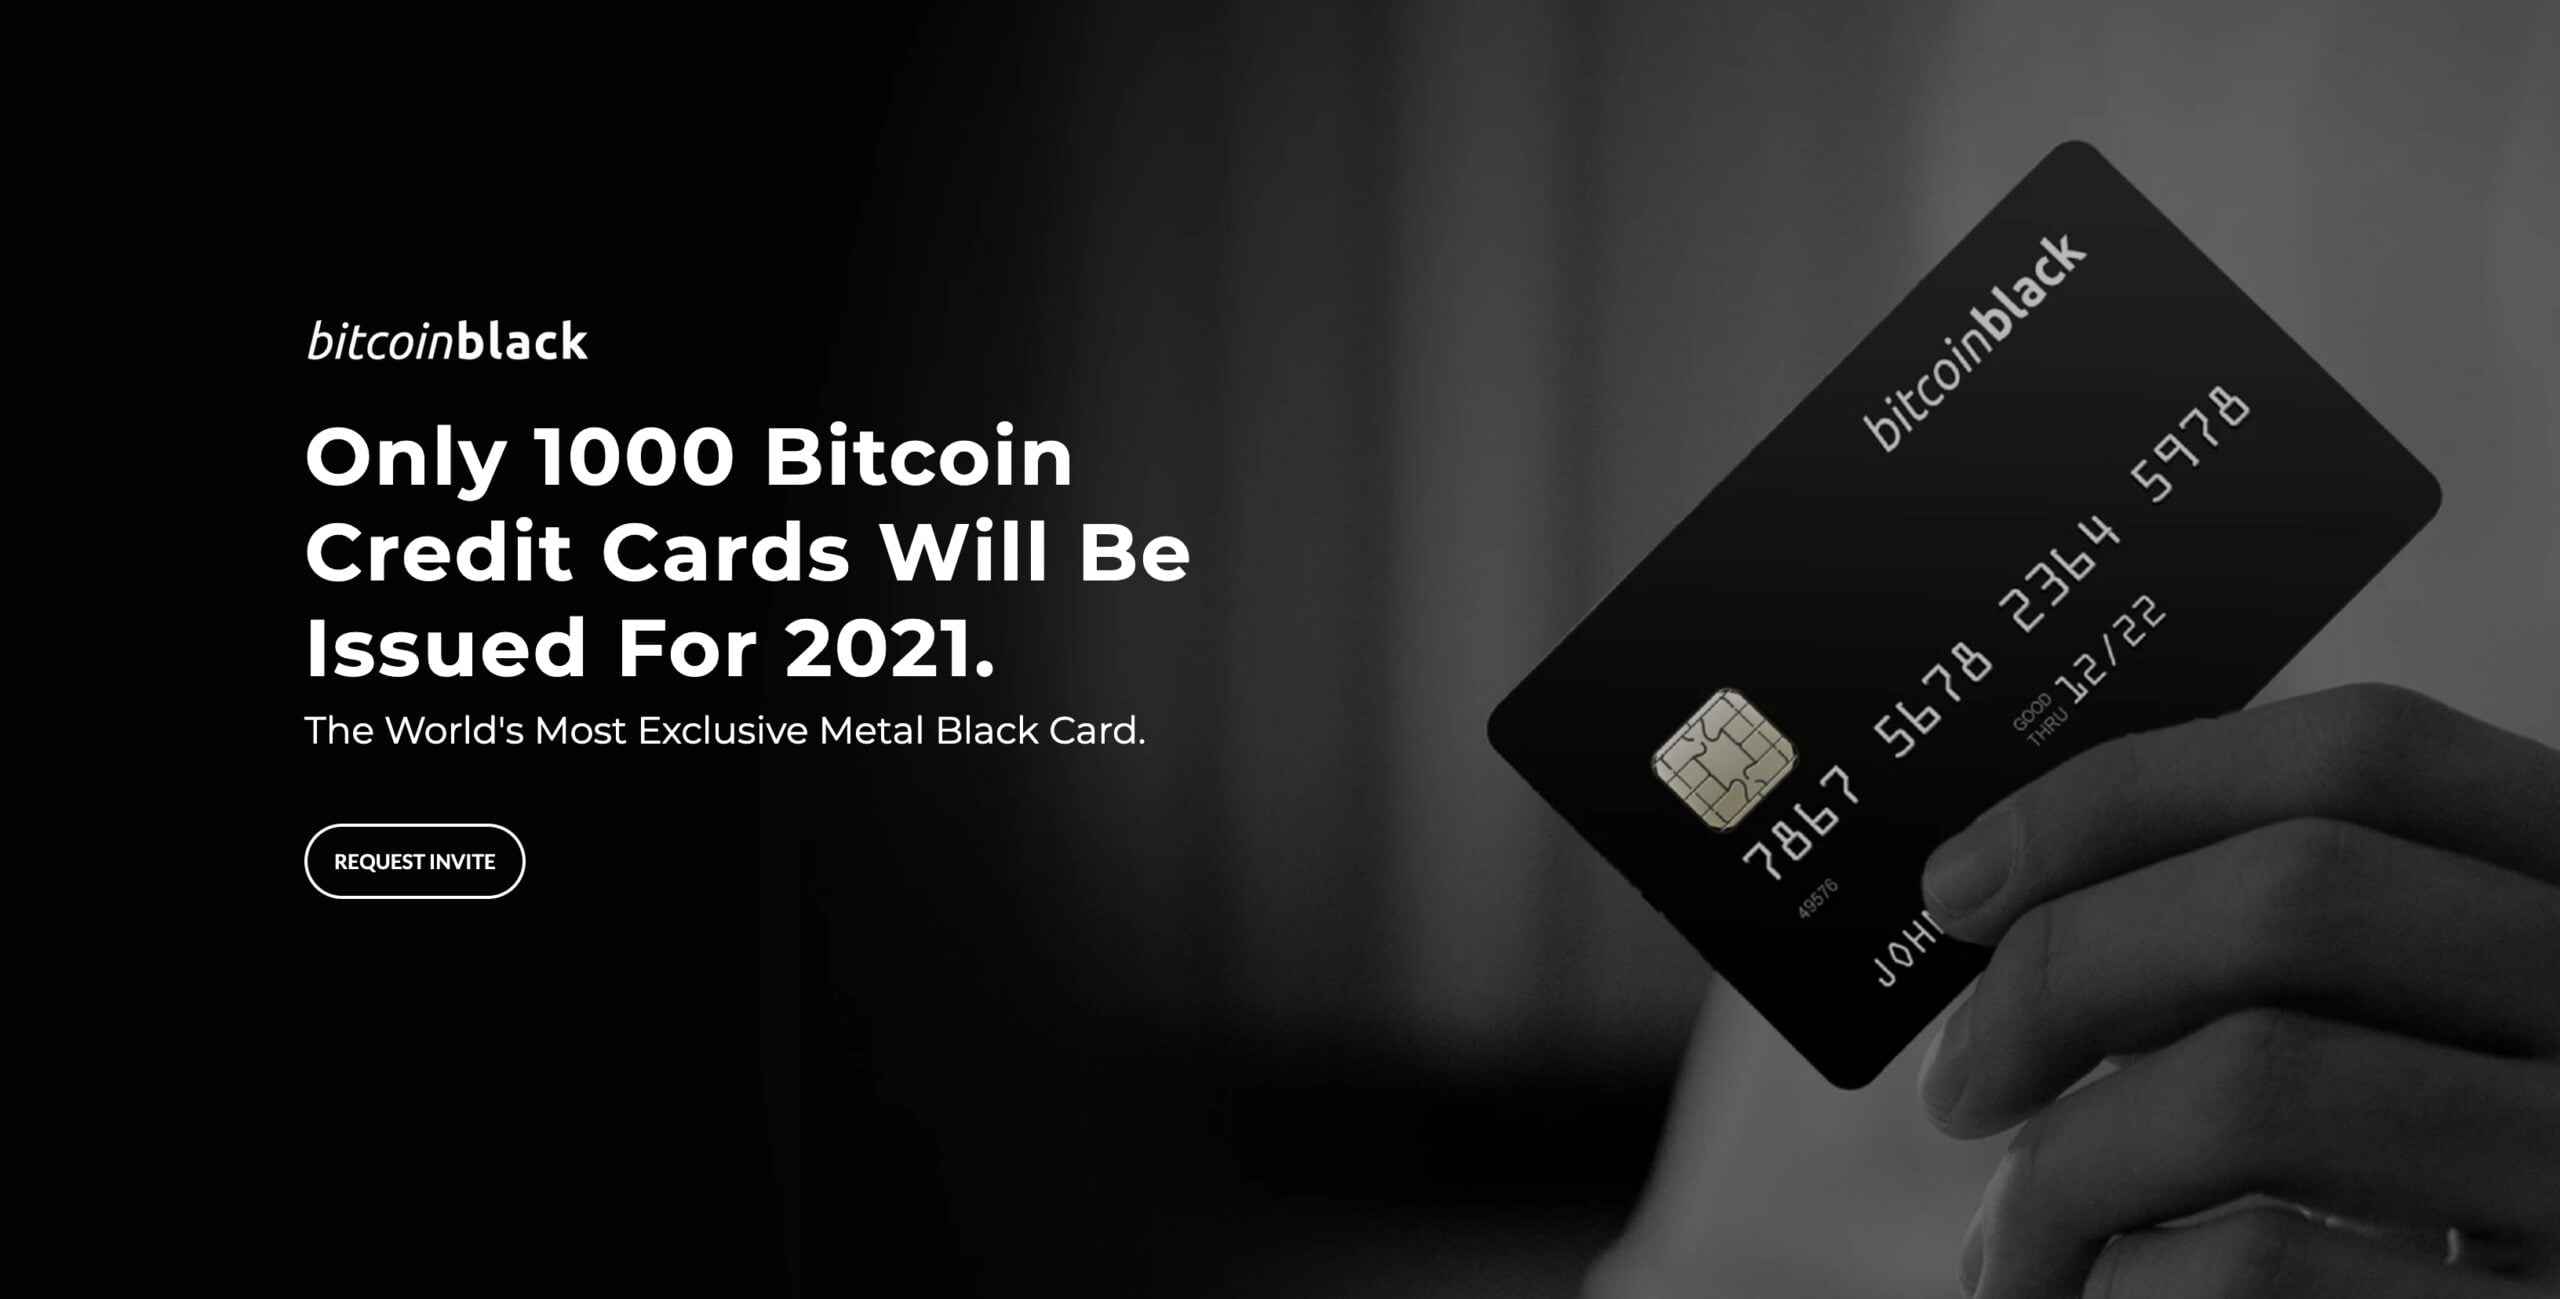 FD7 Ventures Increases Investment in BitcoinBlack, a Bitcoin Credit Card Available Worldwide